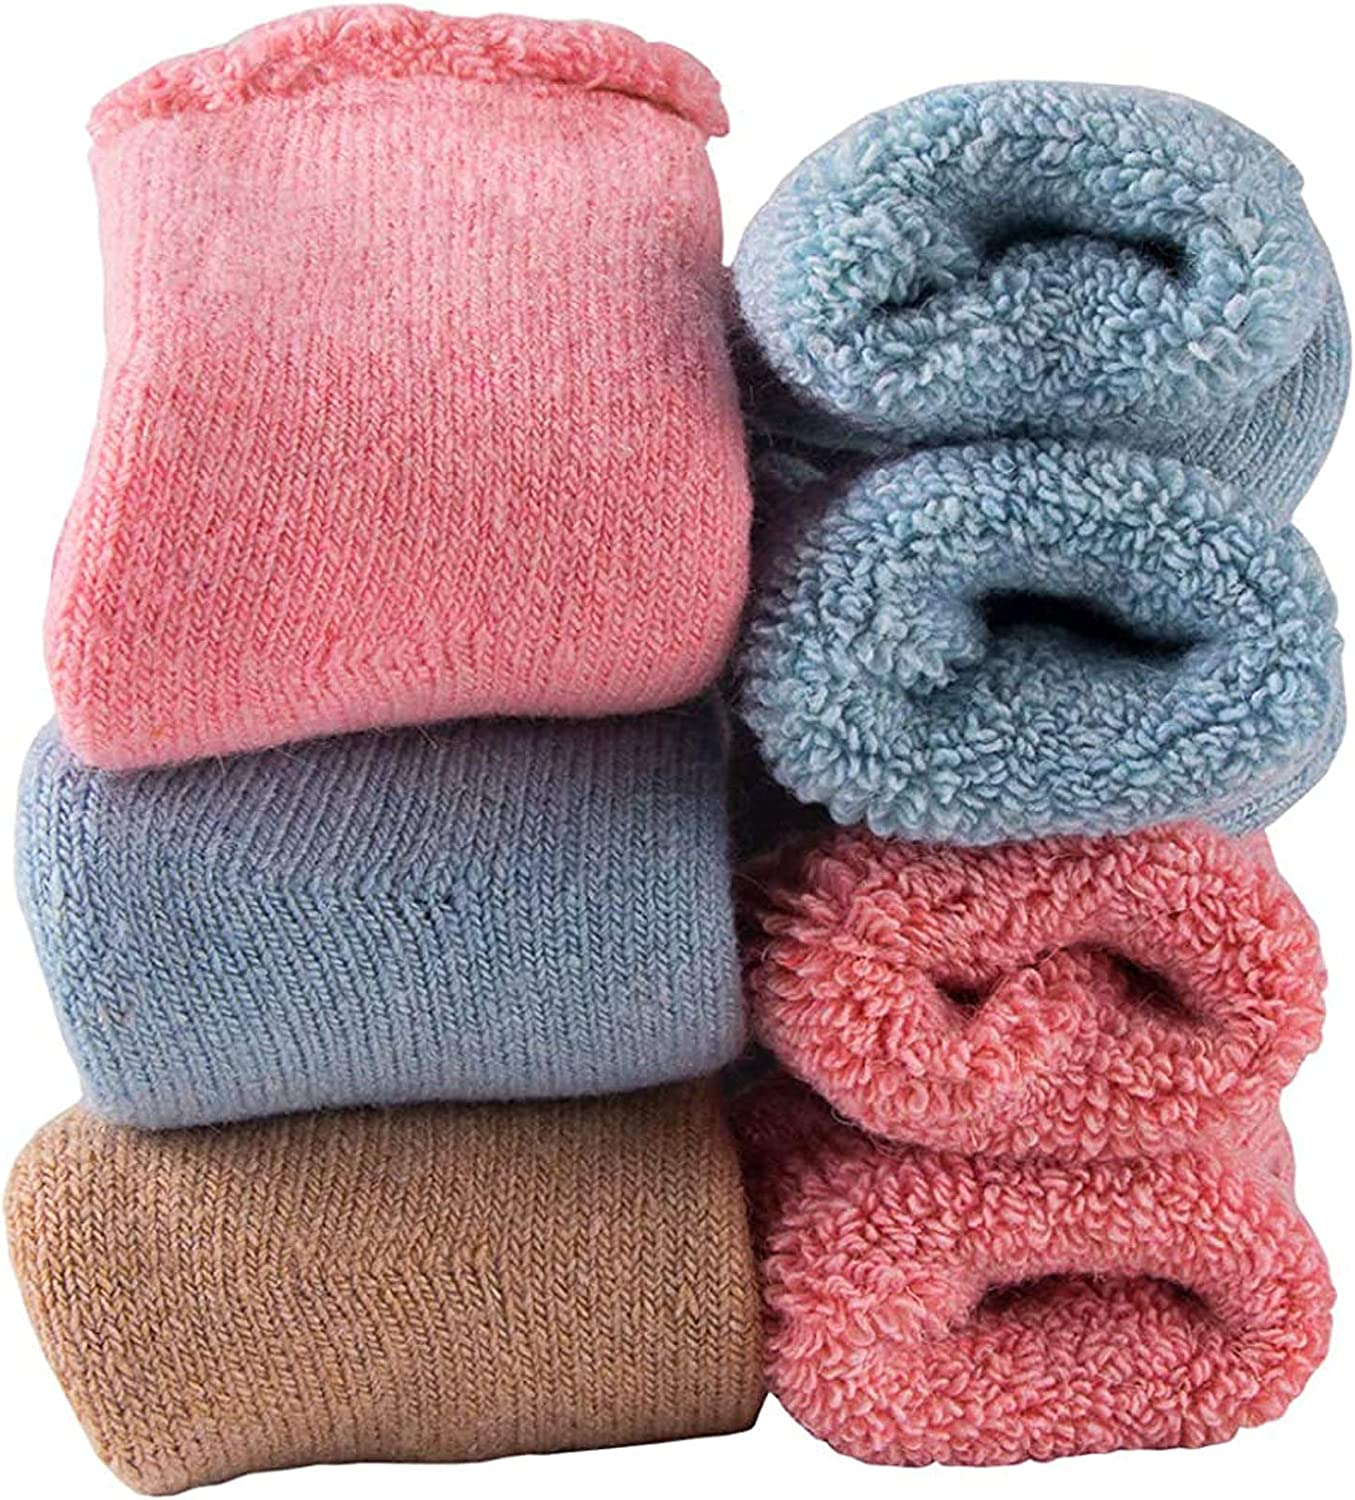 Baby Toddler Thick Wool Socks - Super Warm Soft Winter Solid Color Casual Crew Socks For Baby Girls Boys(Pack of 3)